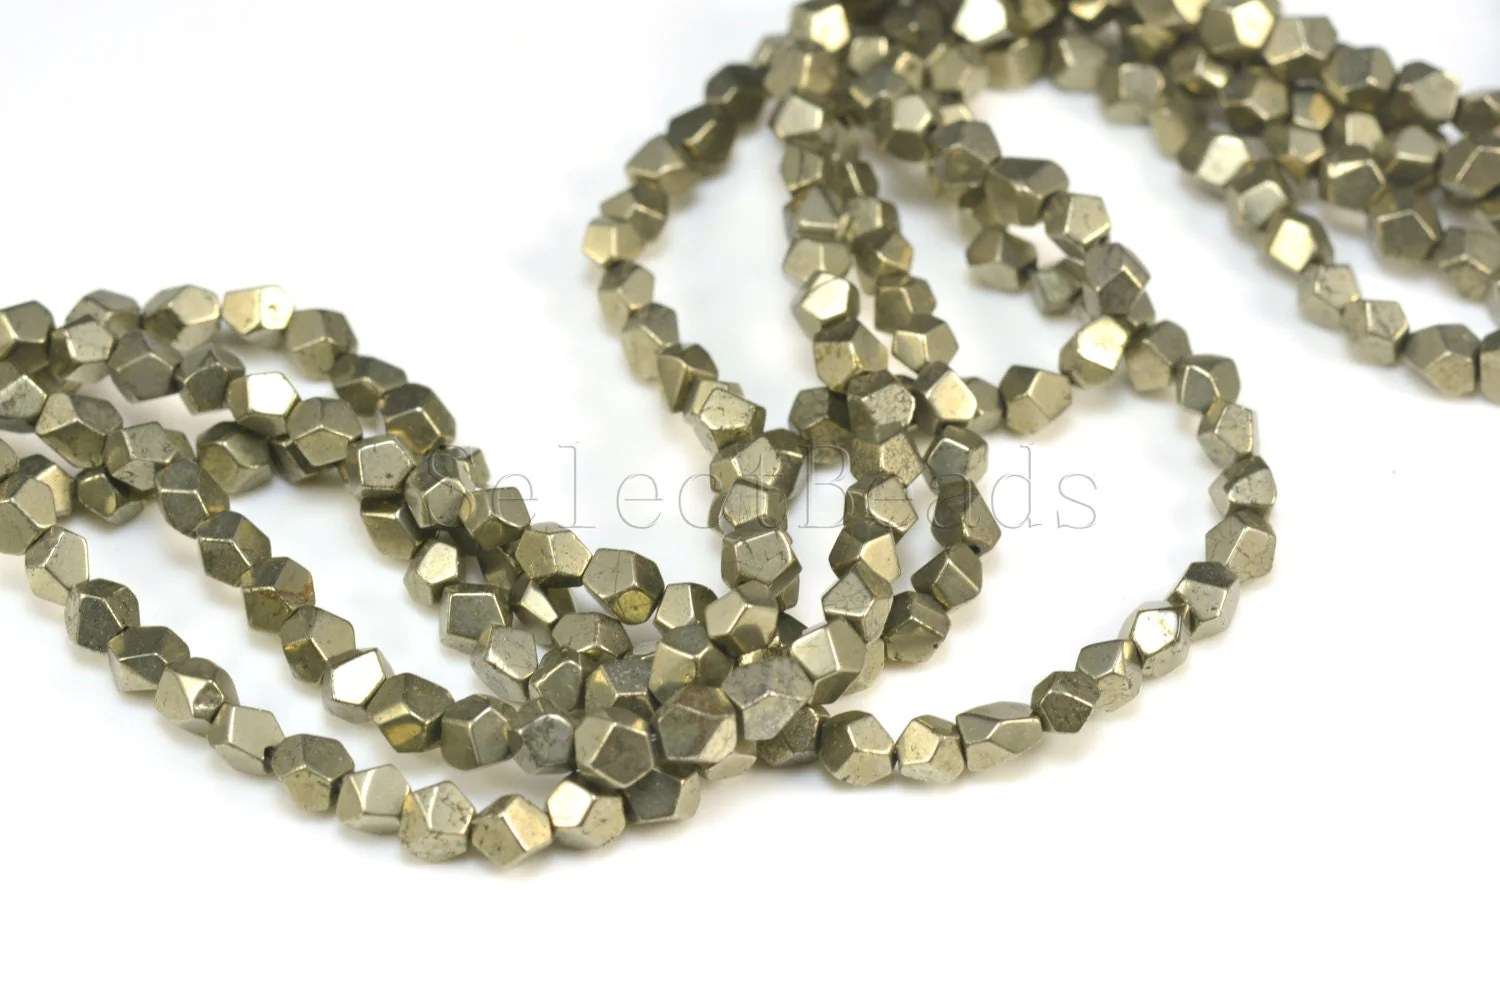 Pyrite, 5x6mm Faceted Nugget Beads,jewelry Beads,stone. Gemini Pendant. Classy Wedding Rings. Sapphire Diamond Pendant. Form Diamond. Luxurious Wedding Rings. Elephant Rings. Modern Bands. Best Selling Engagement Rings